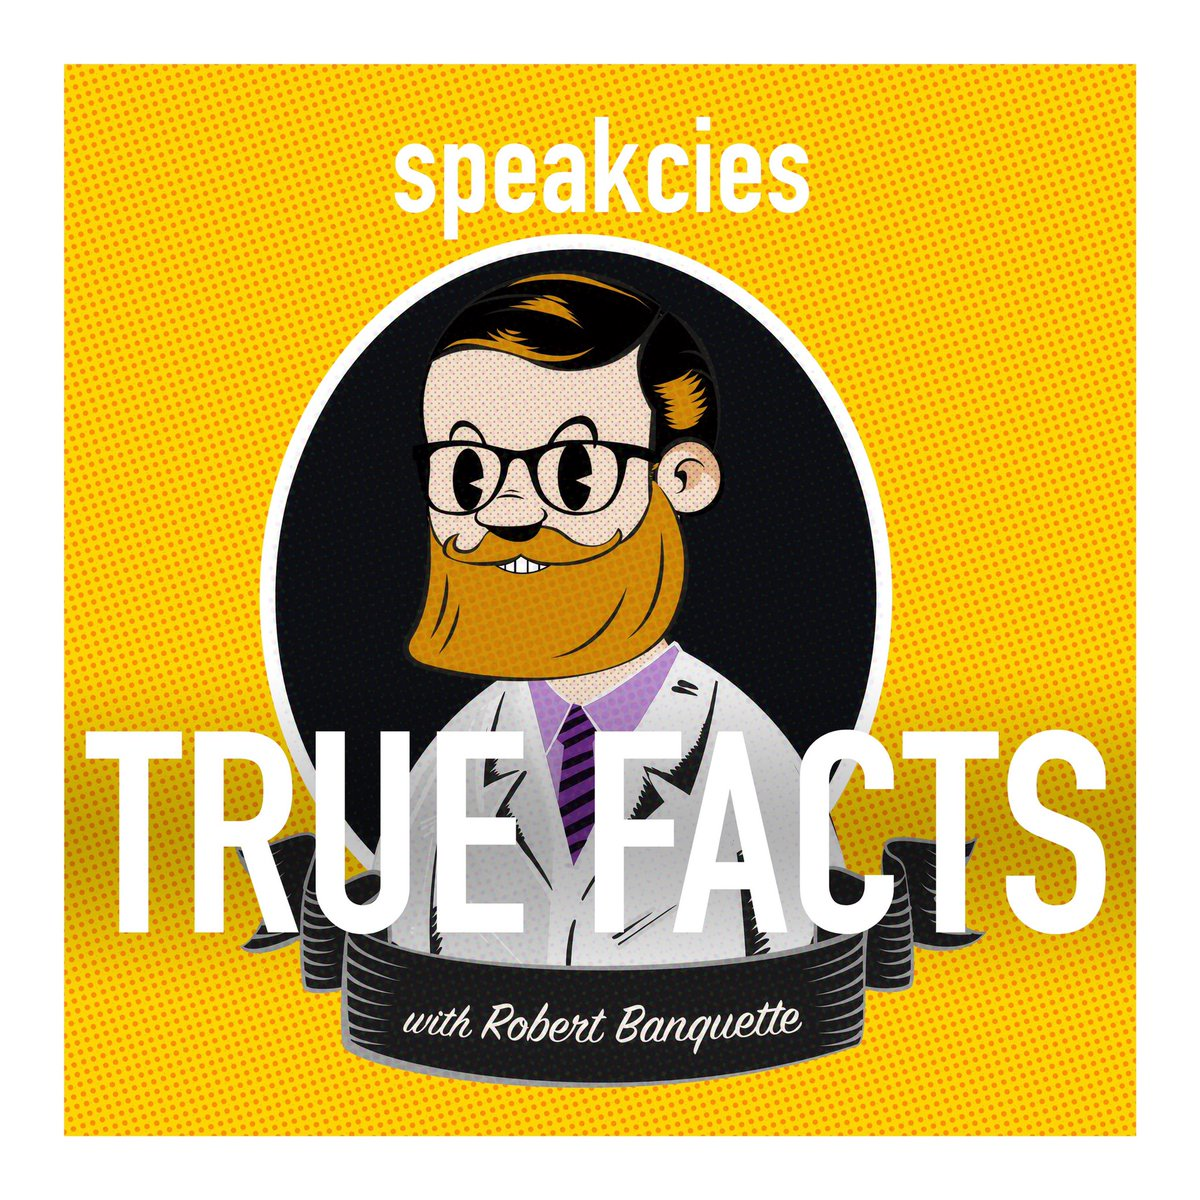 New episode of @tfspeakcies   is available now!  The life and career of #AgathaChristie , including the #TrueFacts  of her 11 day disappearance in 1926  Listen today at  http://bit.ly/2RBusRX    #podernfamily  #author  #ironlady  #goldameir  #werewolf  #Germany  #murdermysteries  #mystery